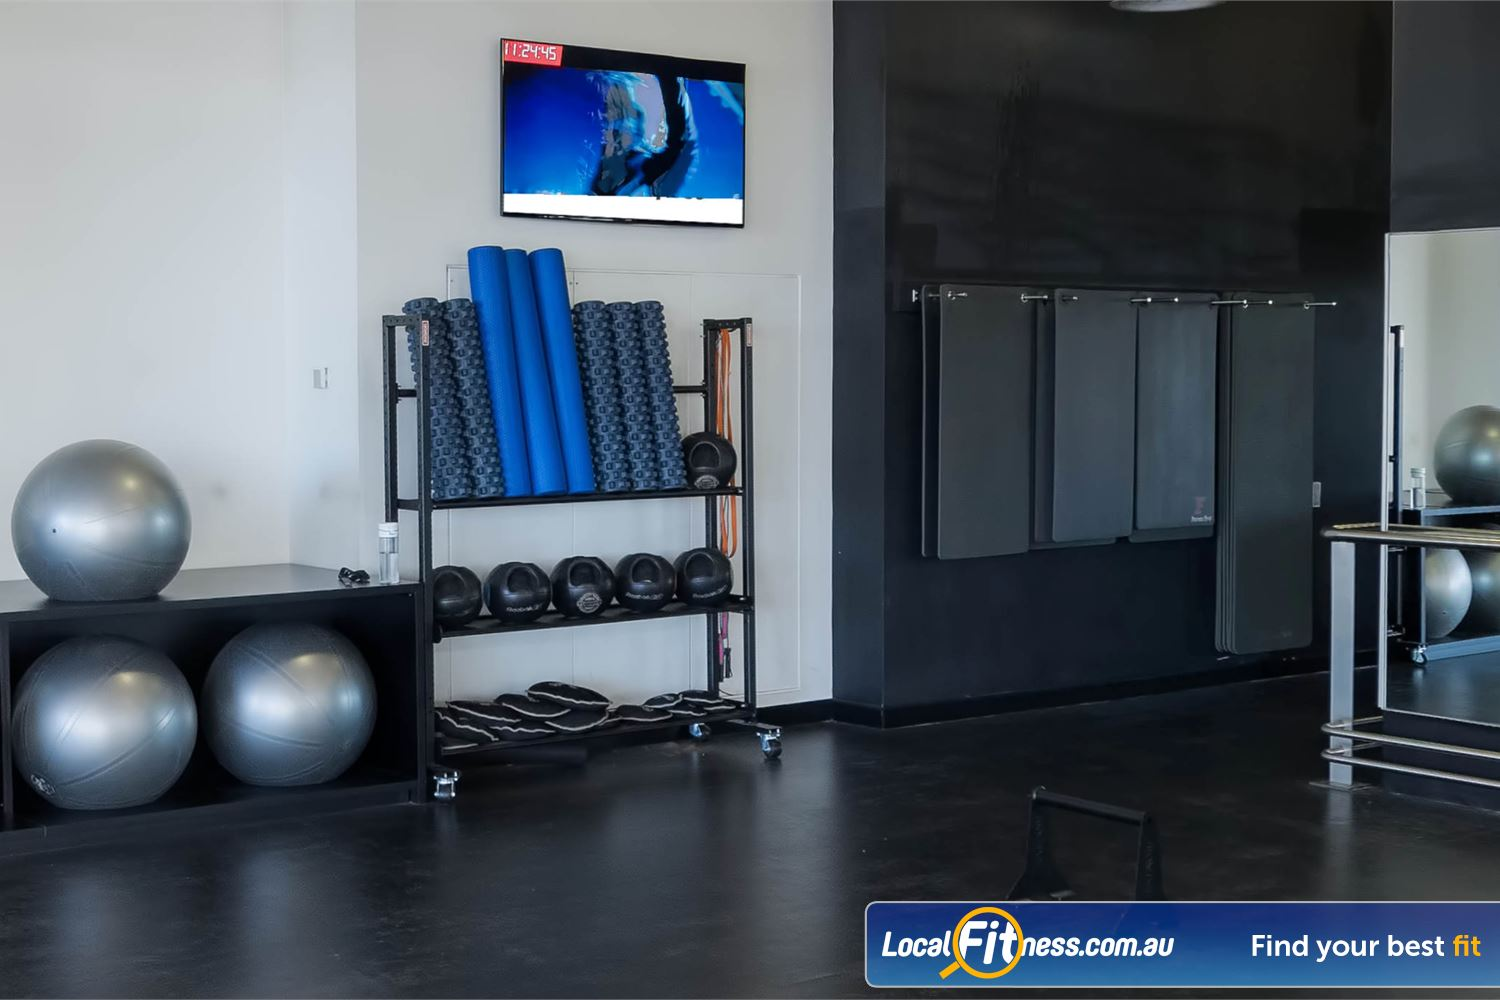 Fitness First Platinum Market St. Near Alexandria Mc Fully equipped ab and stretching zone with fitballs, foam rollers, stretching mats and more.